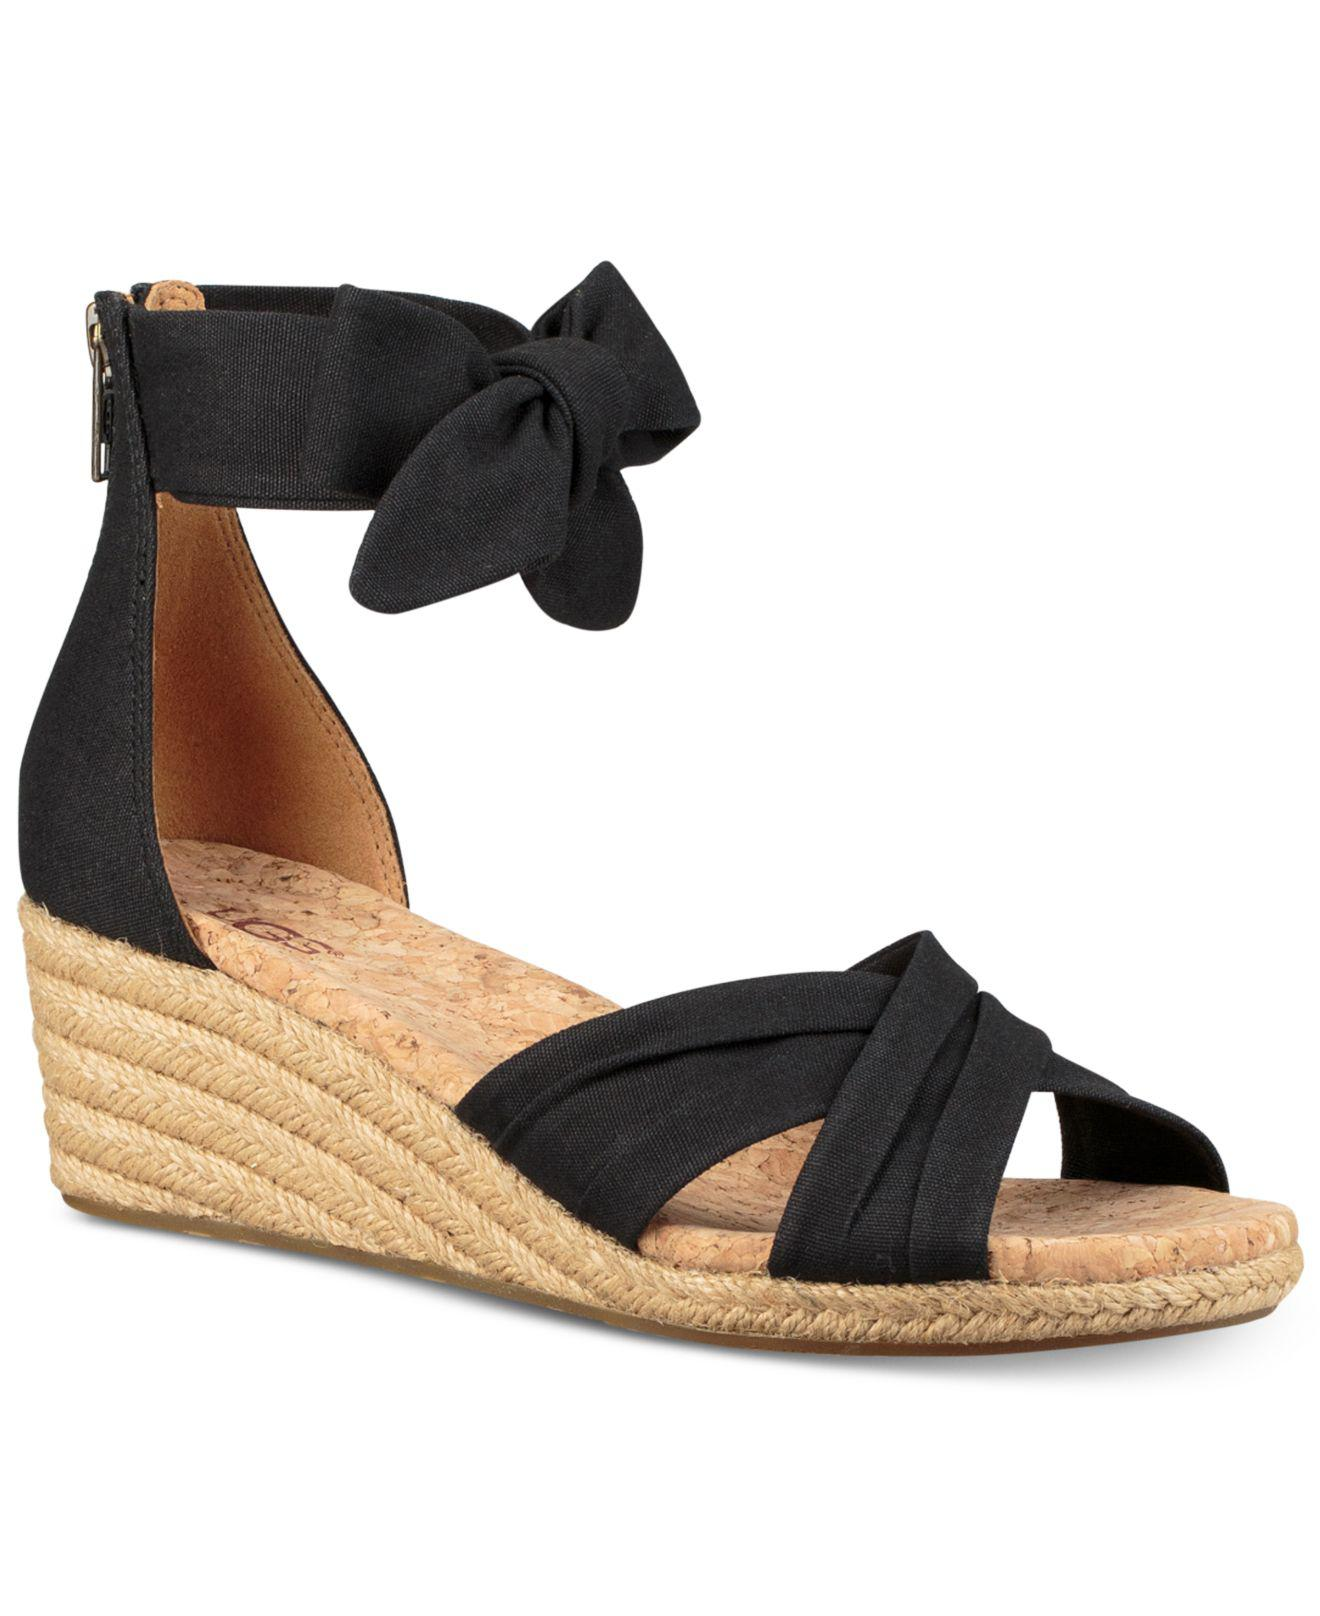 c467f7b49b1 Lyst - UGG Traci Espadrille Wedge Sandals in Black